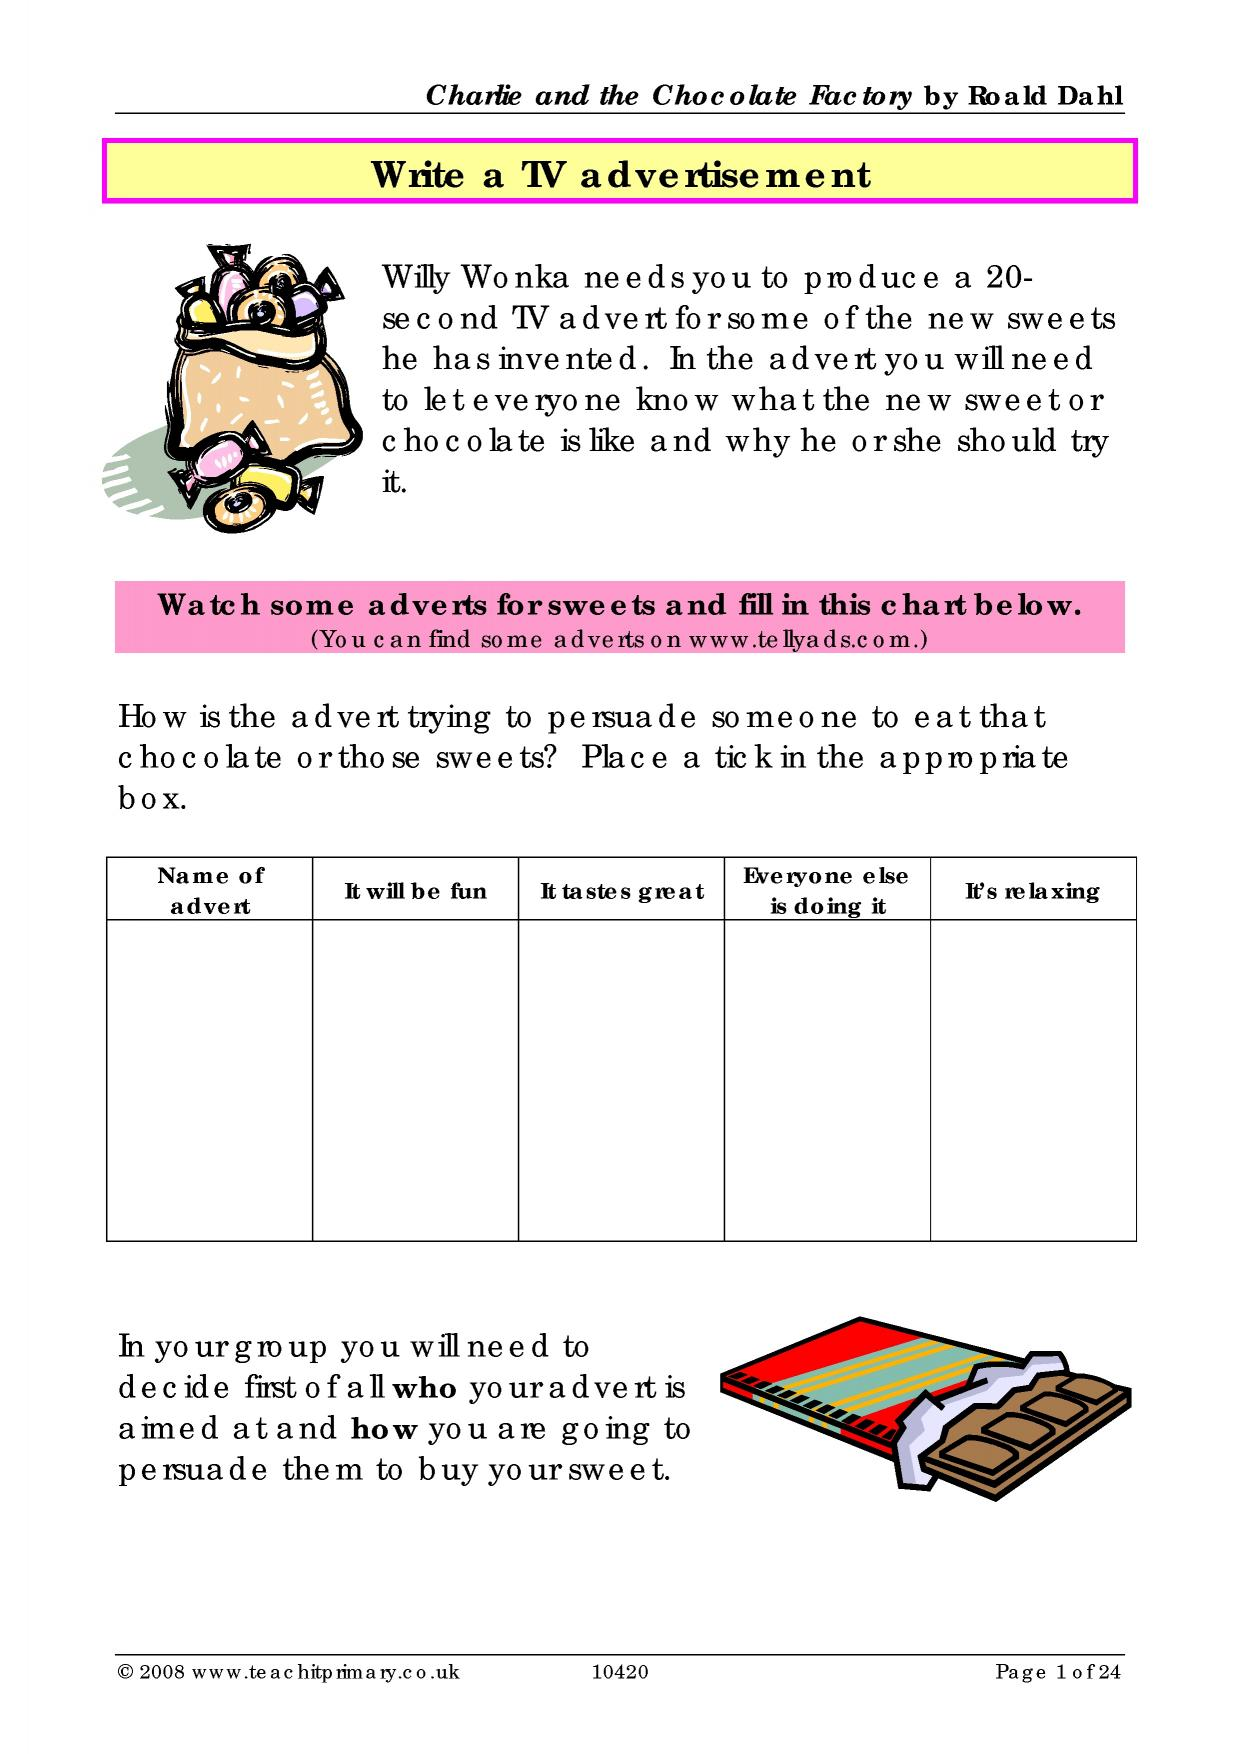 Worksheets Charlie And The Chocolate Factory Worksheets